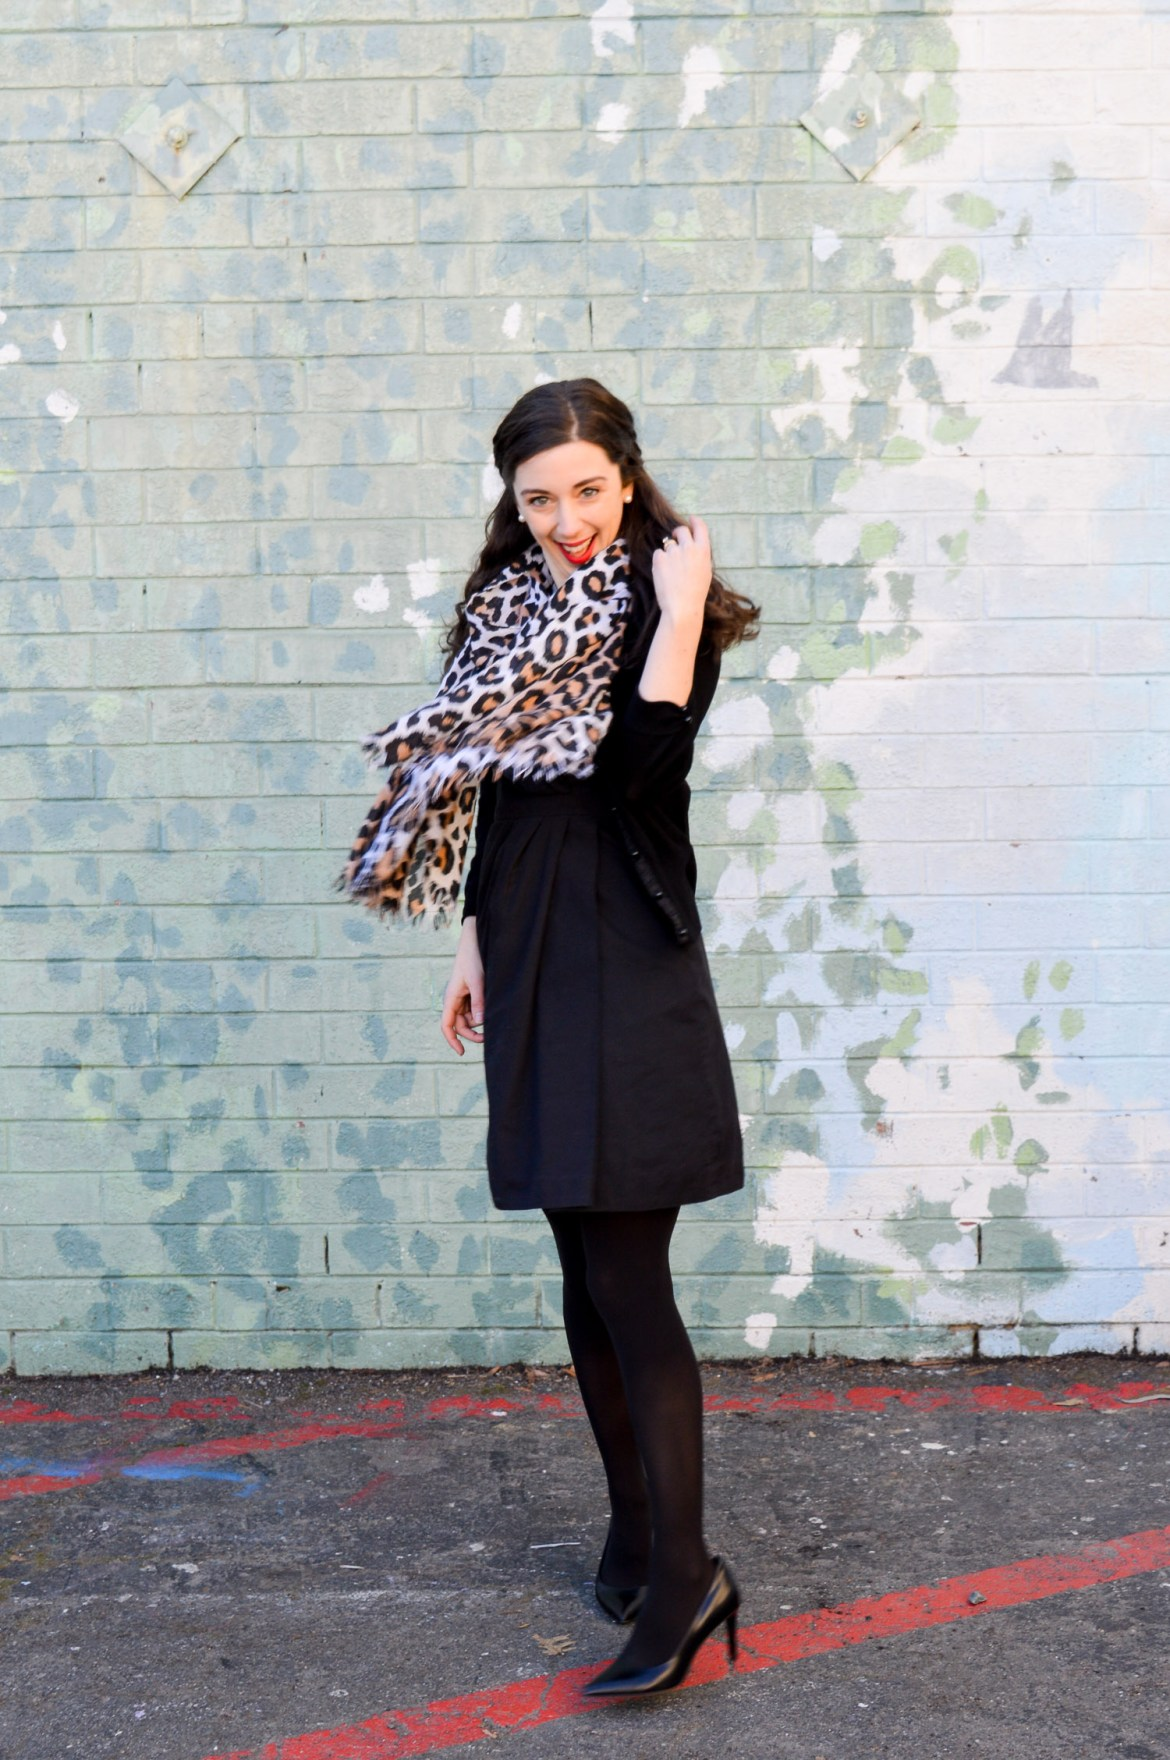 3 Ways to Style a Little Black Dress // Cardigan + Leopard Print Scarf + Tights & Heels